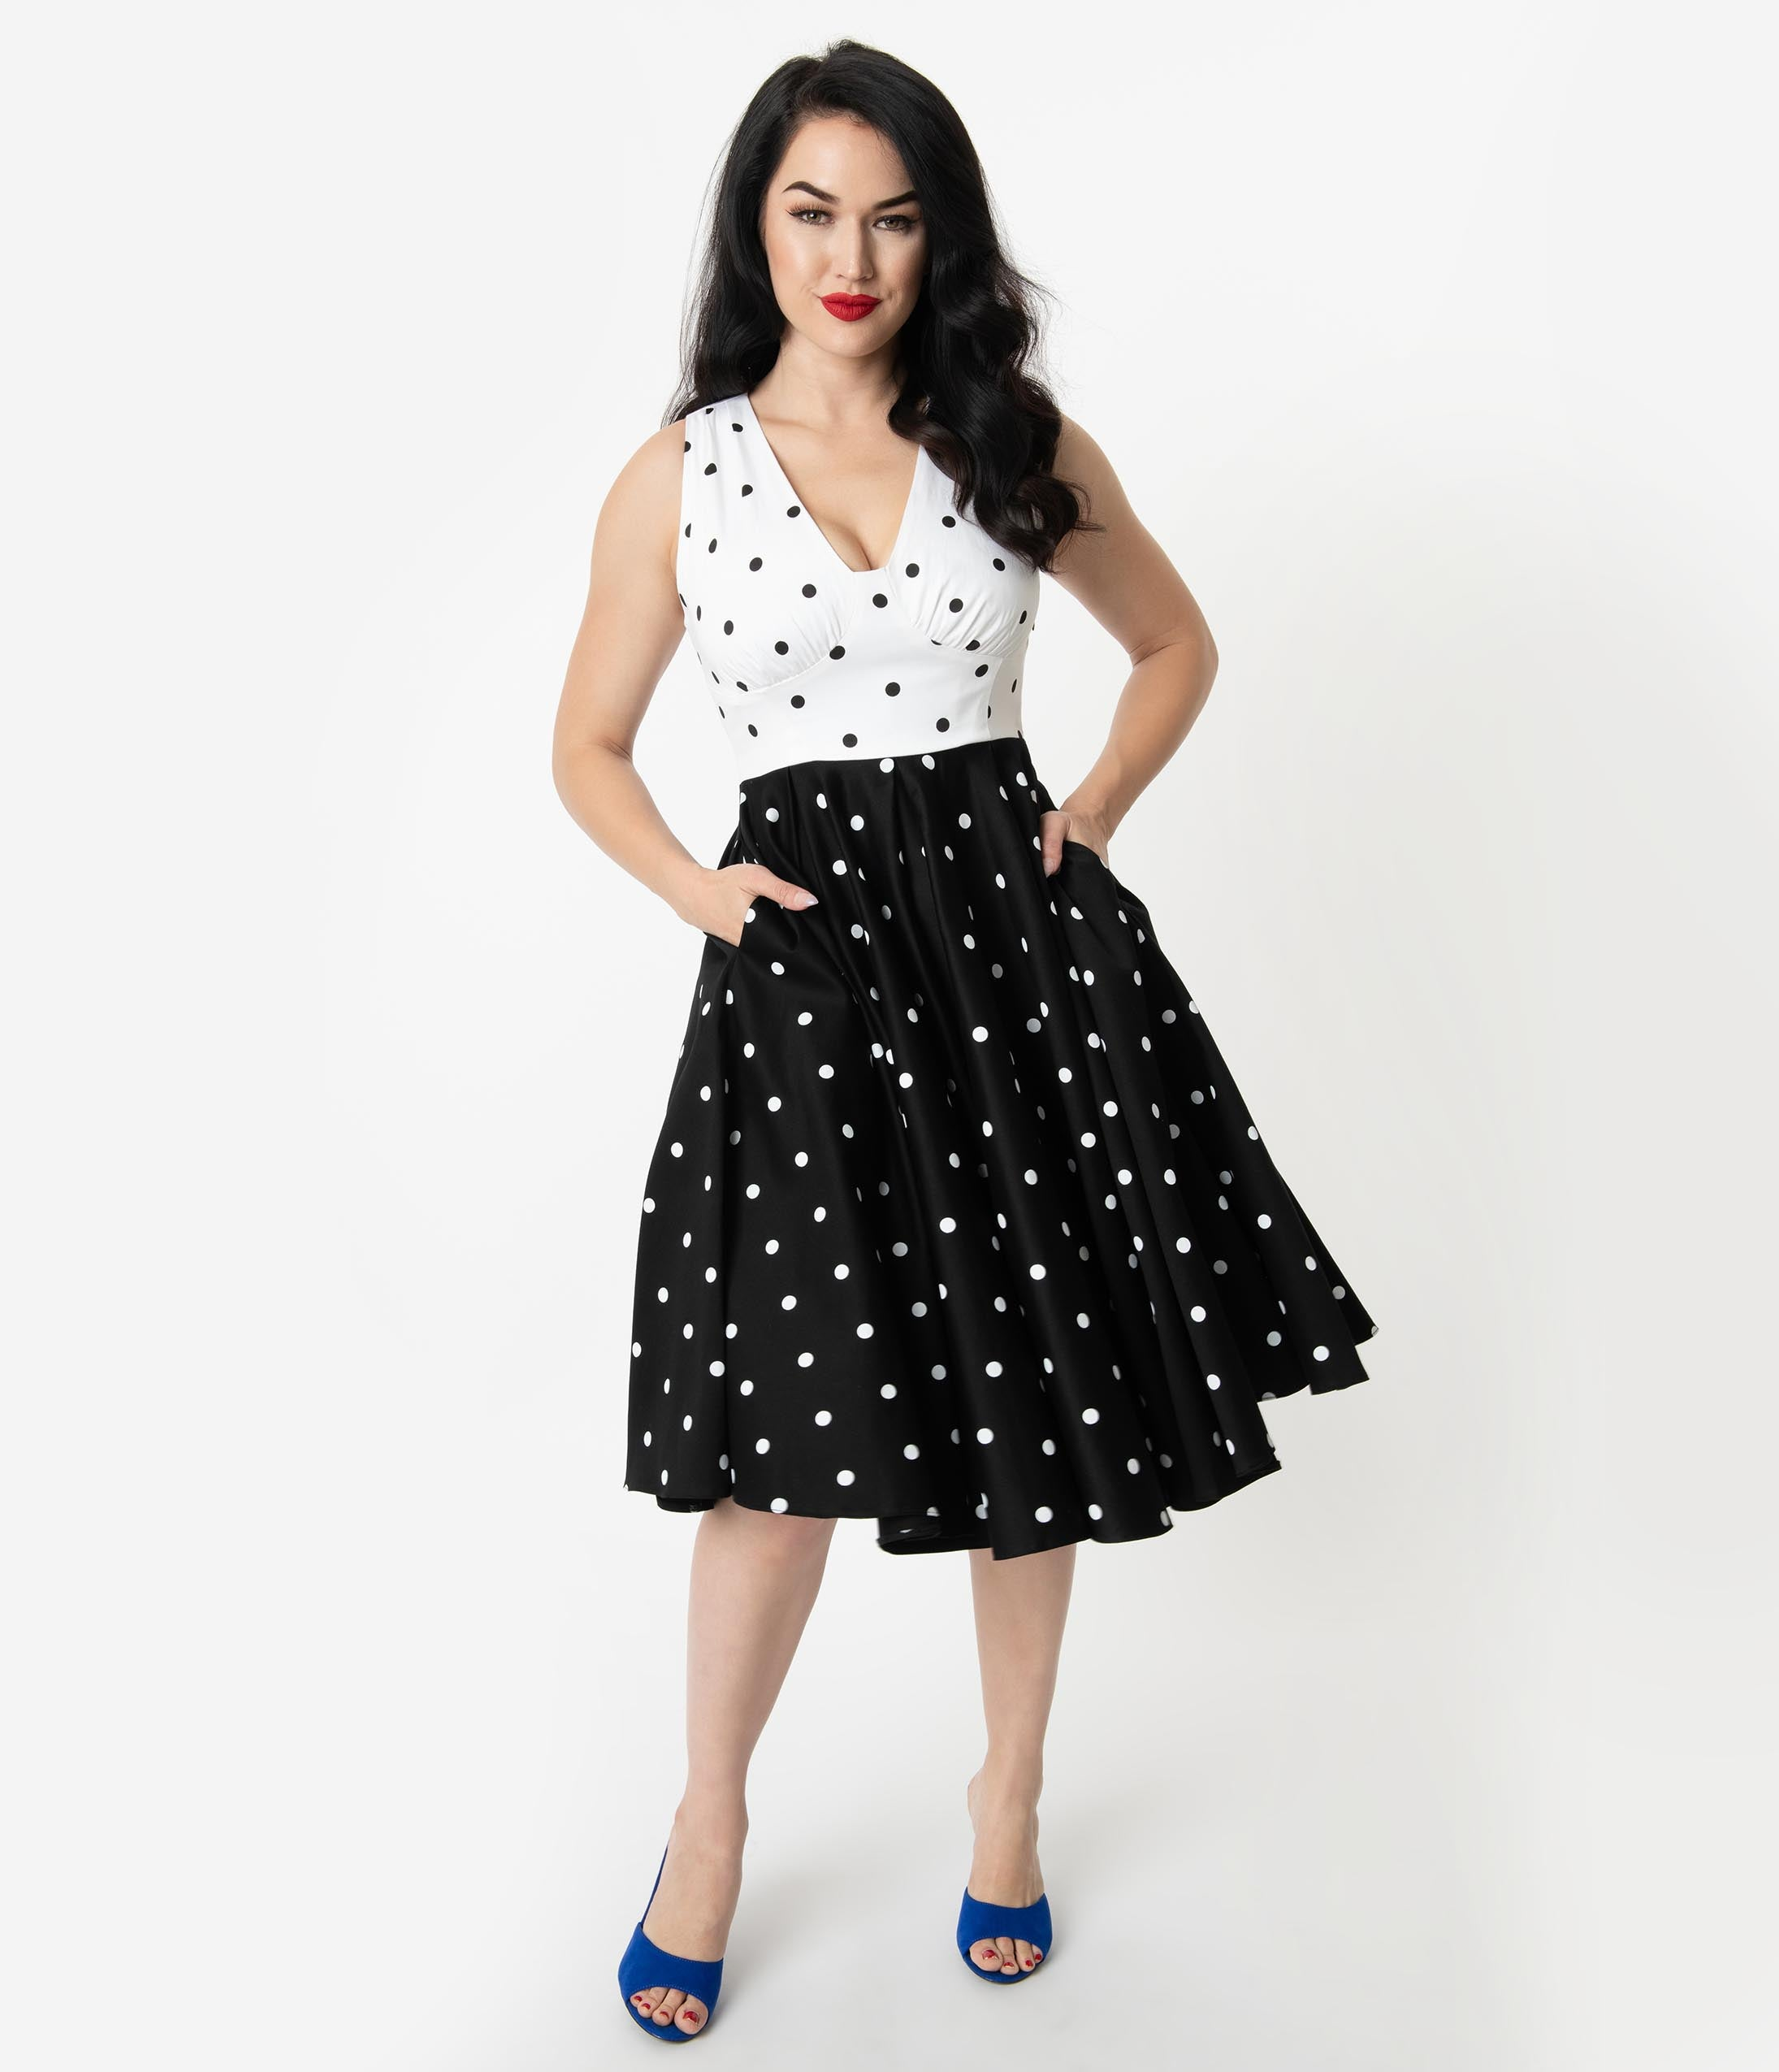 32f308e8c Vintage Diva 1950s Style Black   White Polka Dot Print Esme Swing Dress